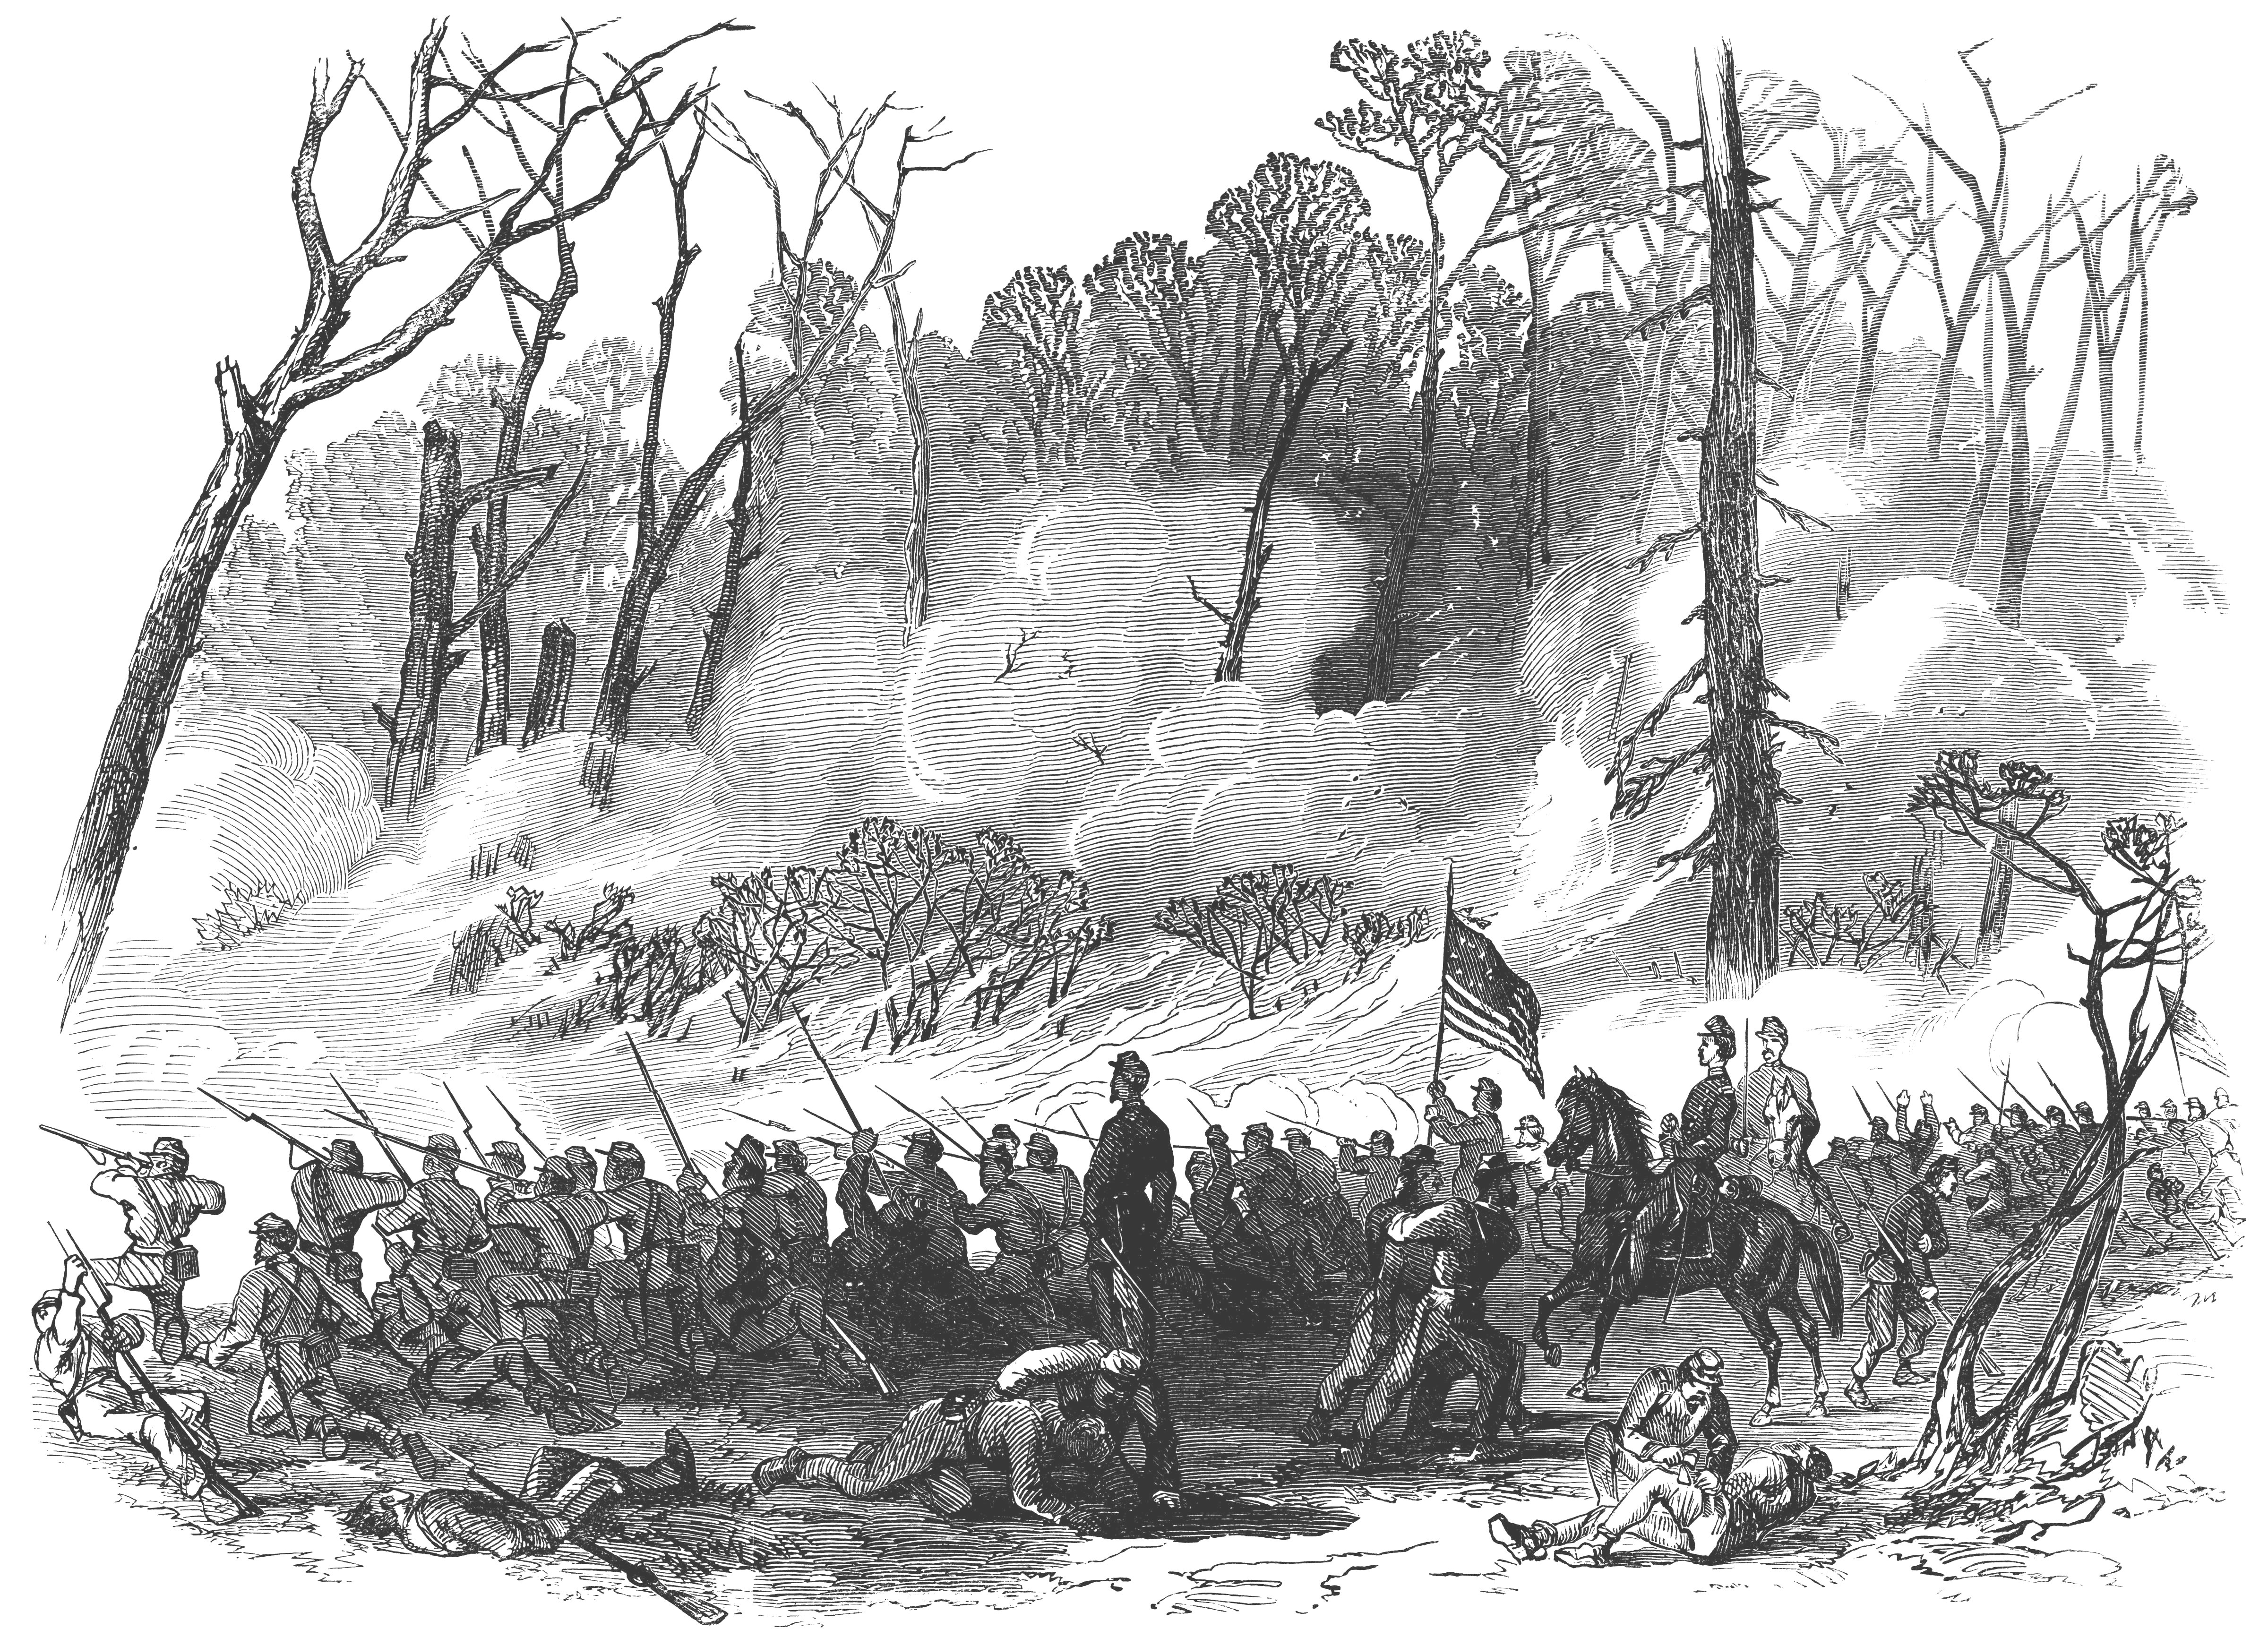 battle of shiloh essay Battle of shiloh essaysafter shiloh the south would never smile again known originally as the battle of pittsburg landing, the battle of shiloh was the bloodiest battle fought in north america up to that time.